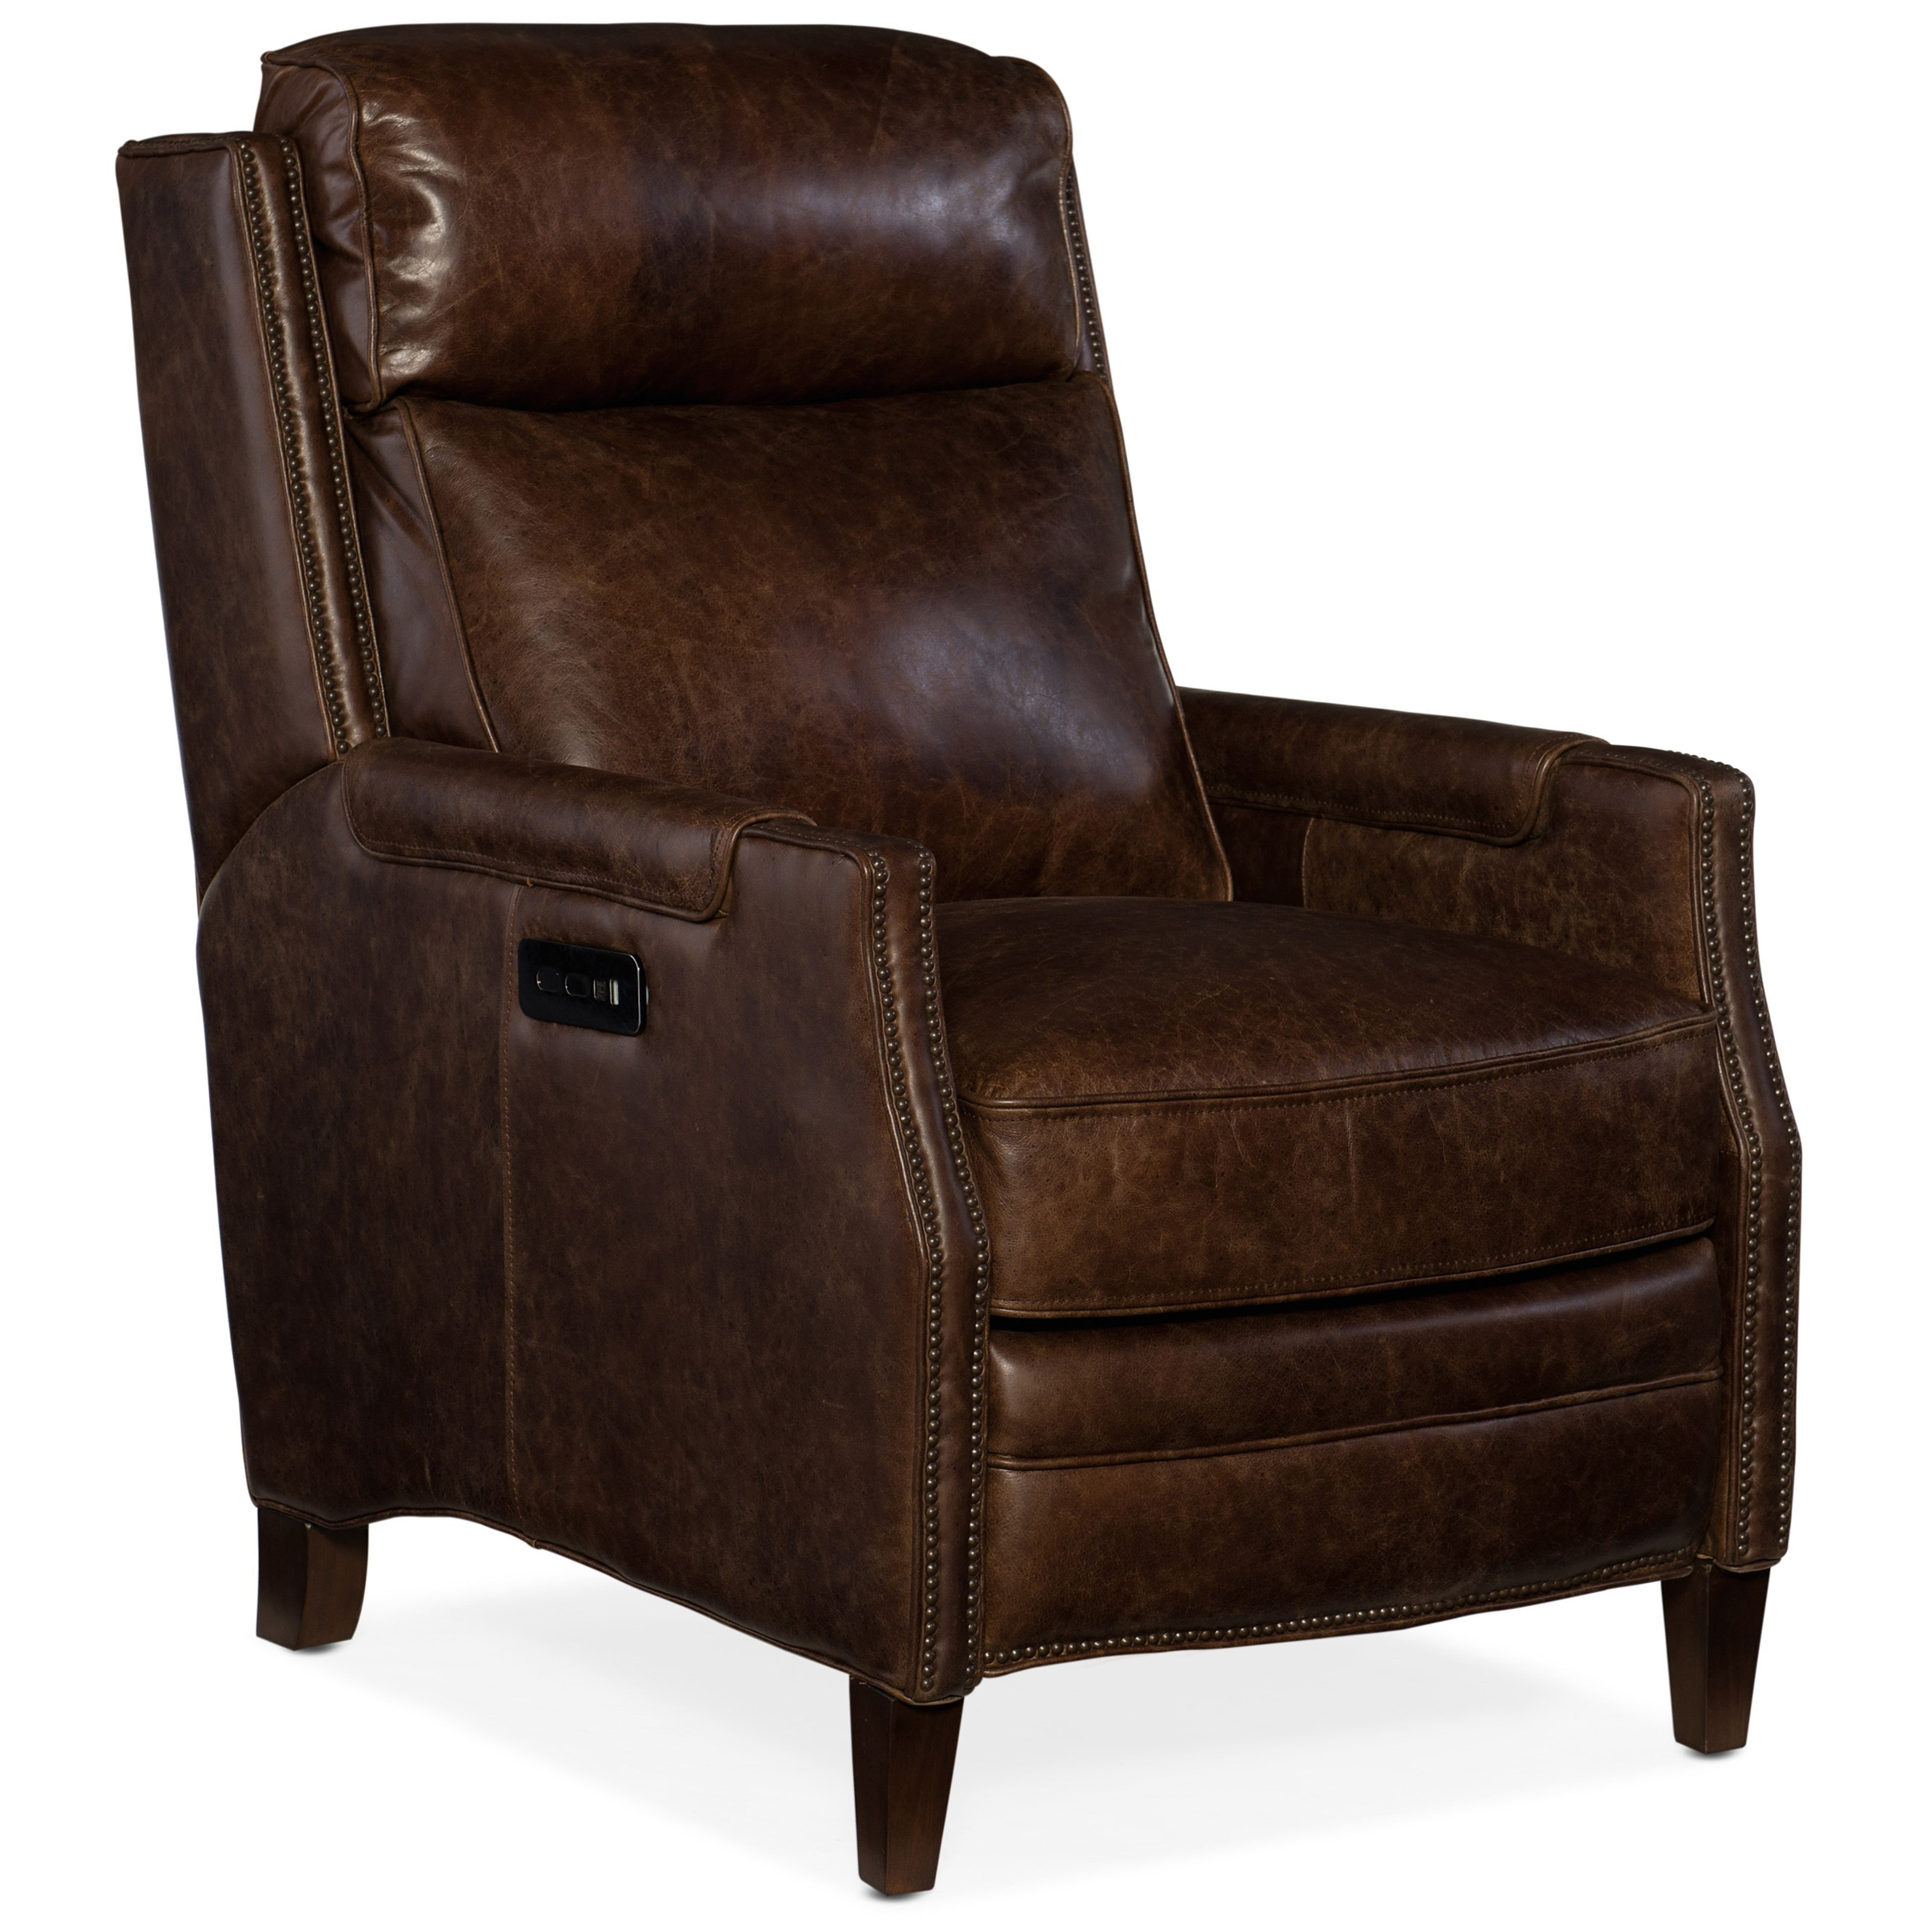 Regale Power Recliner with Power Headrest